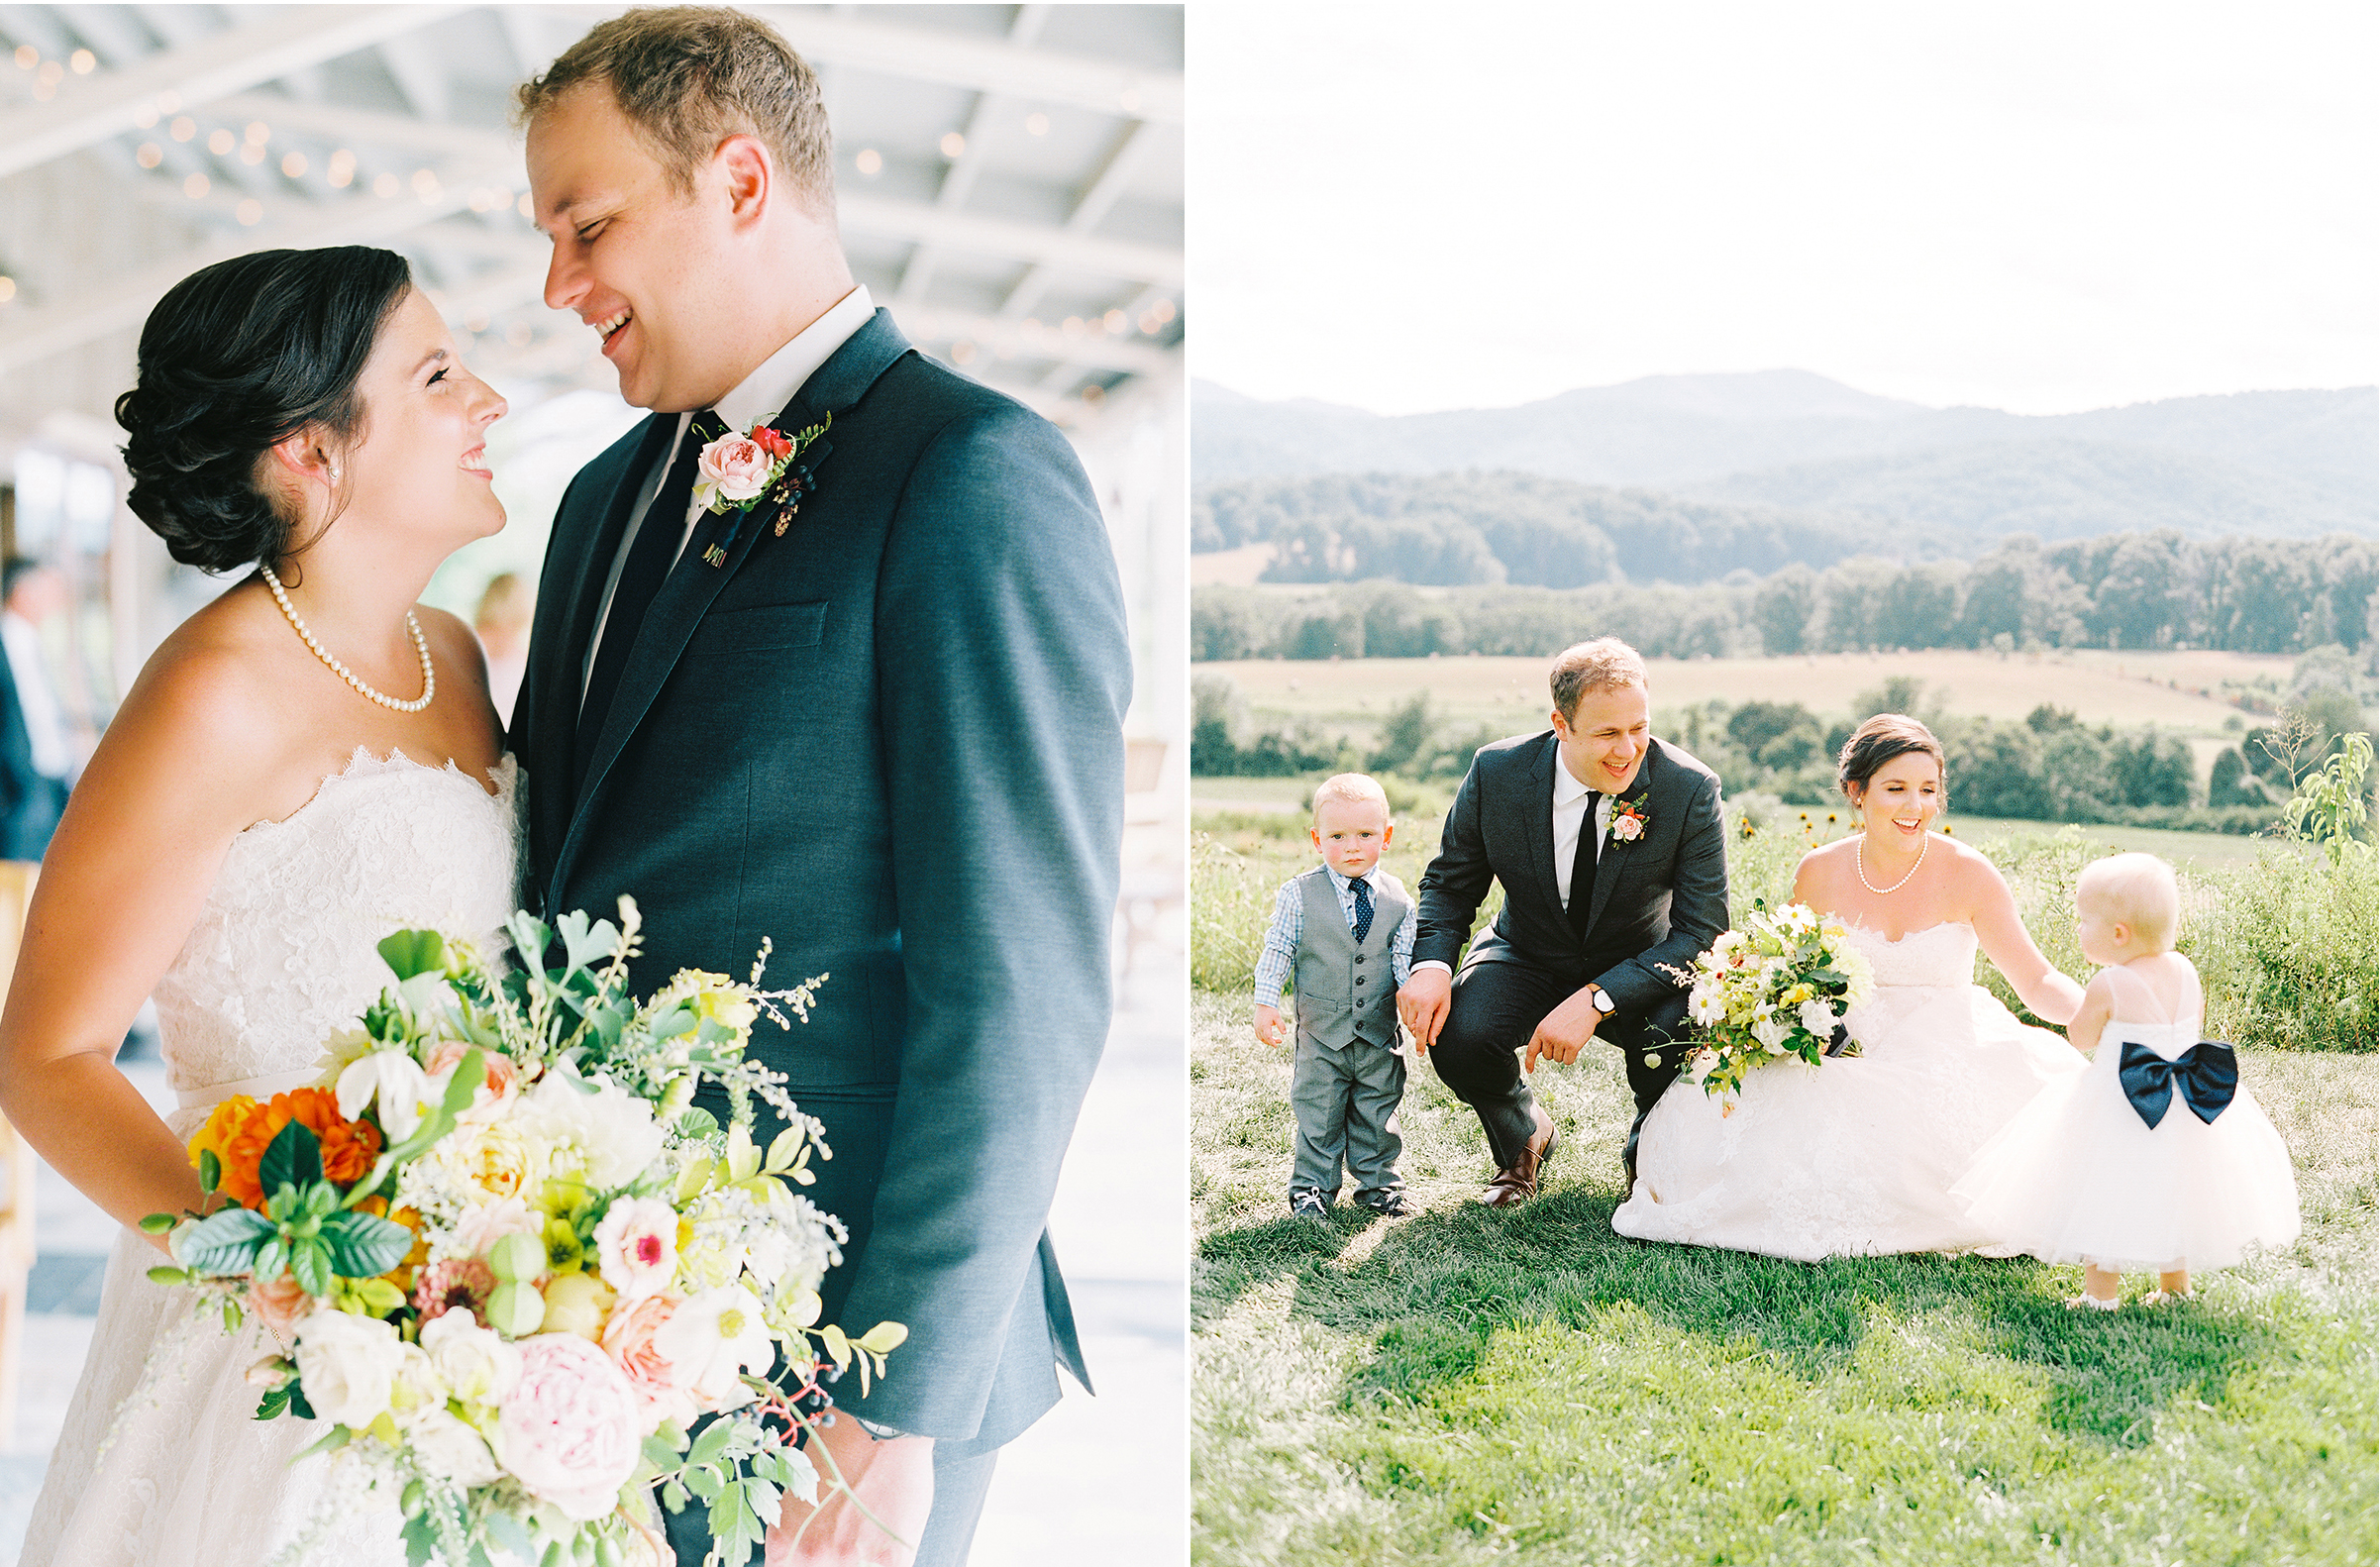 katie stoops photography-pippin hill-ashley baber weddings12.jpg